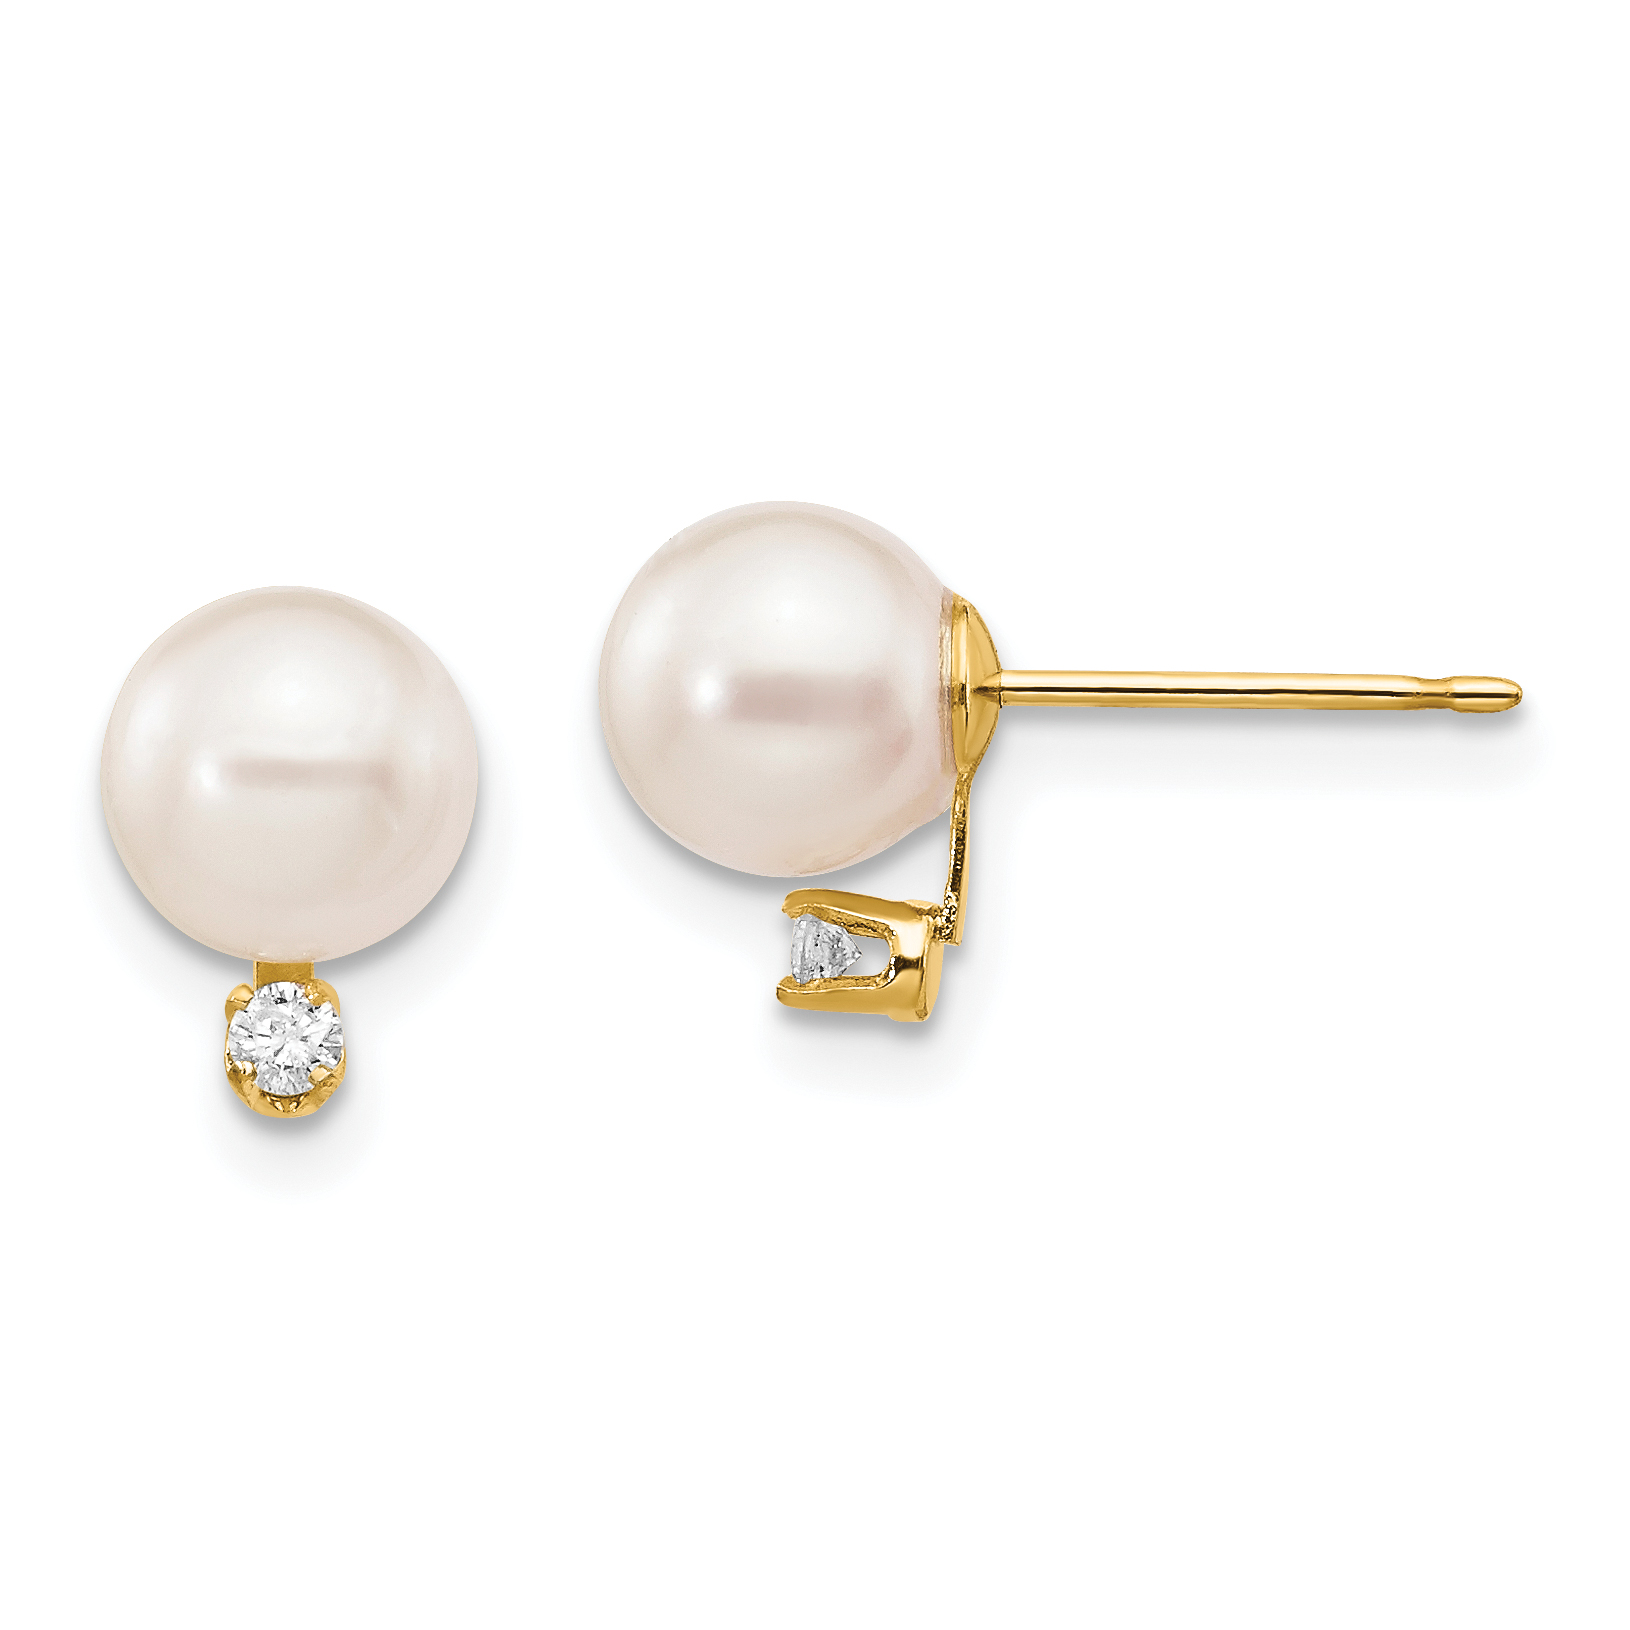 14kt Gold 4-5mm Round White Saltwater Akoya Cultured Pearl Post Earrings